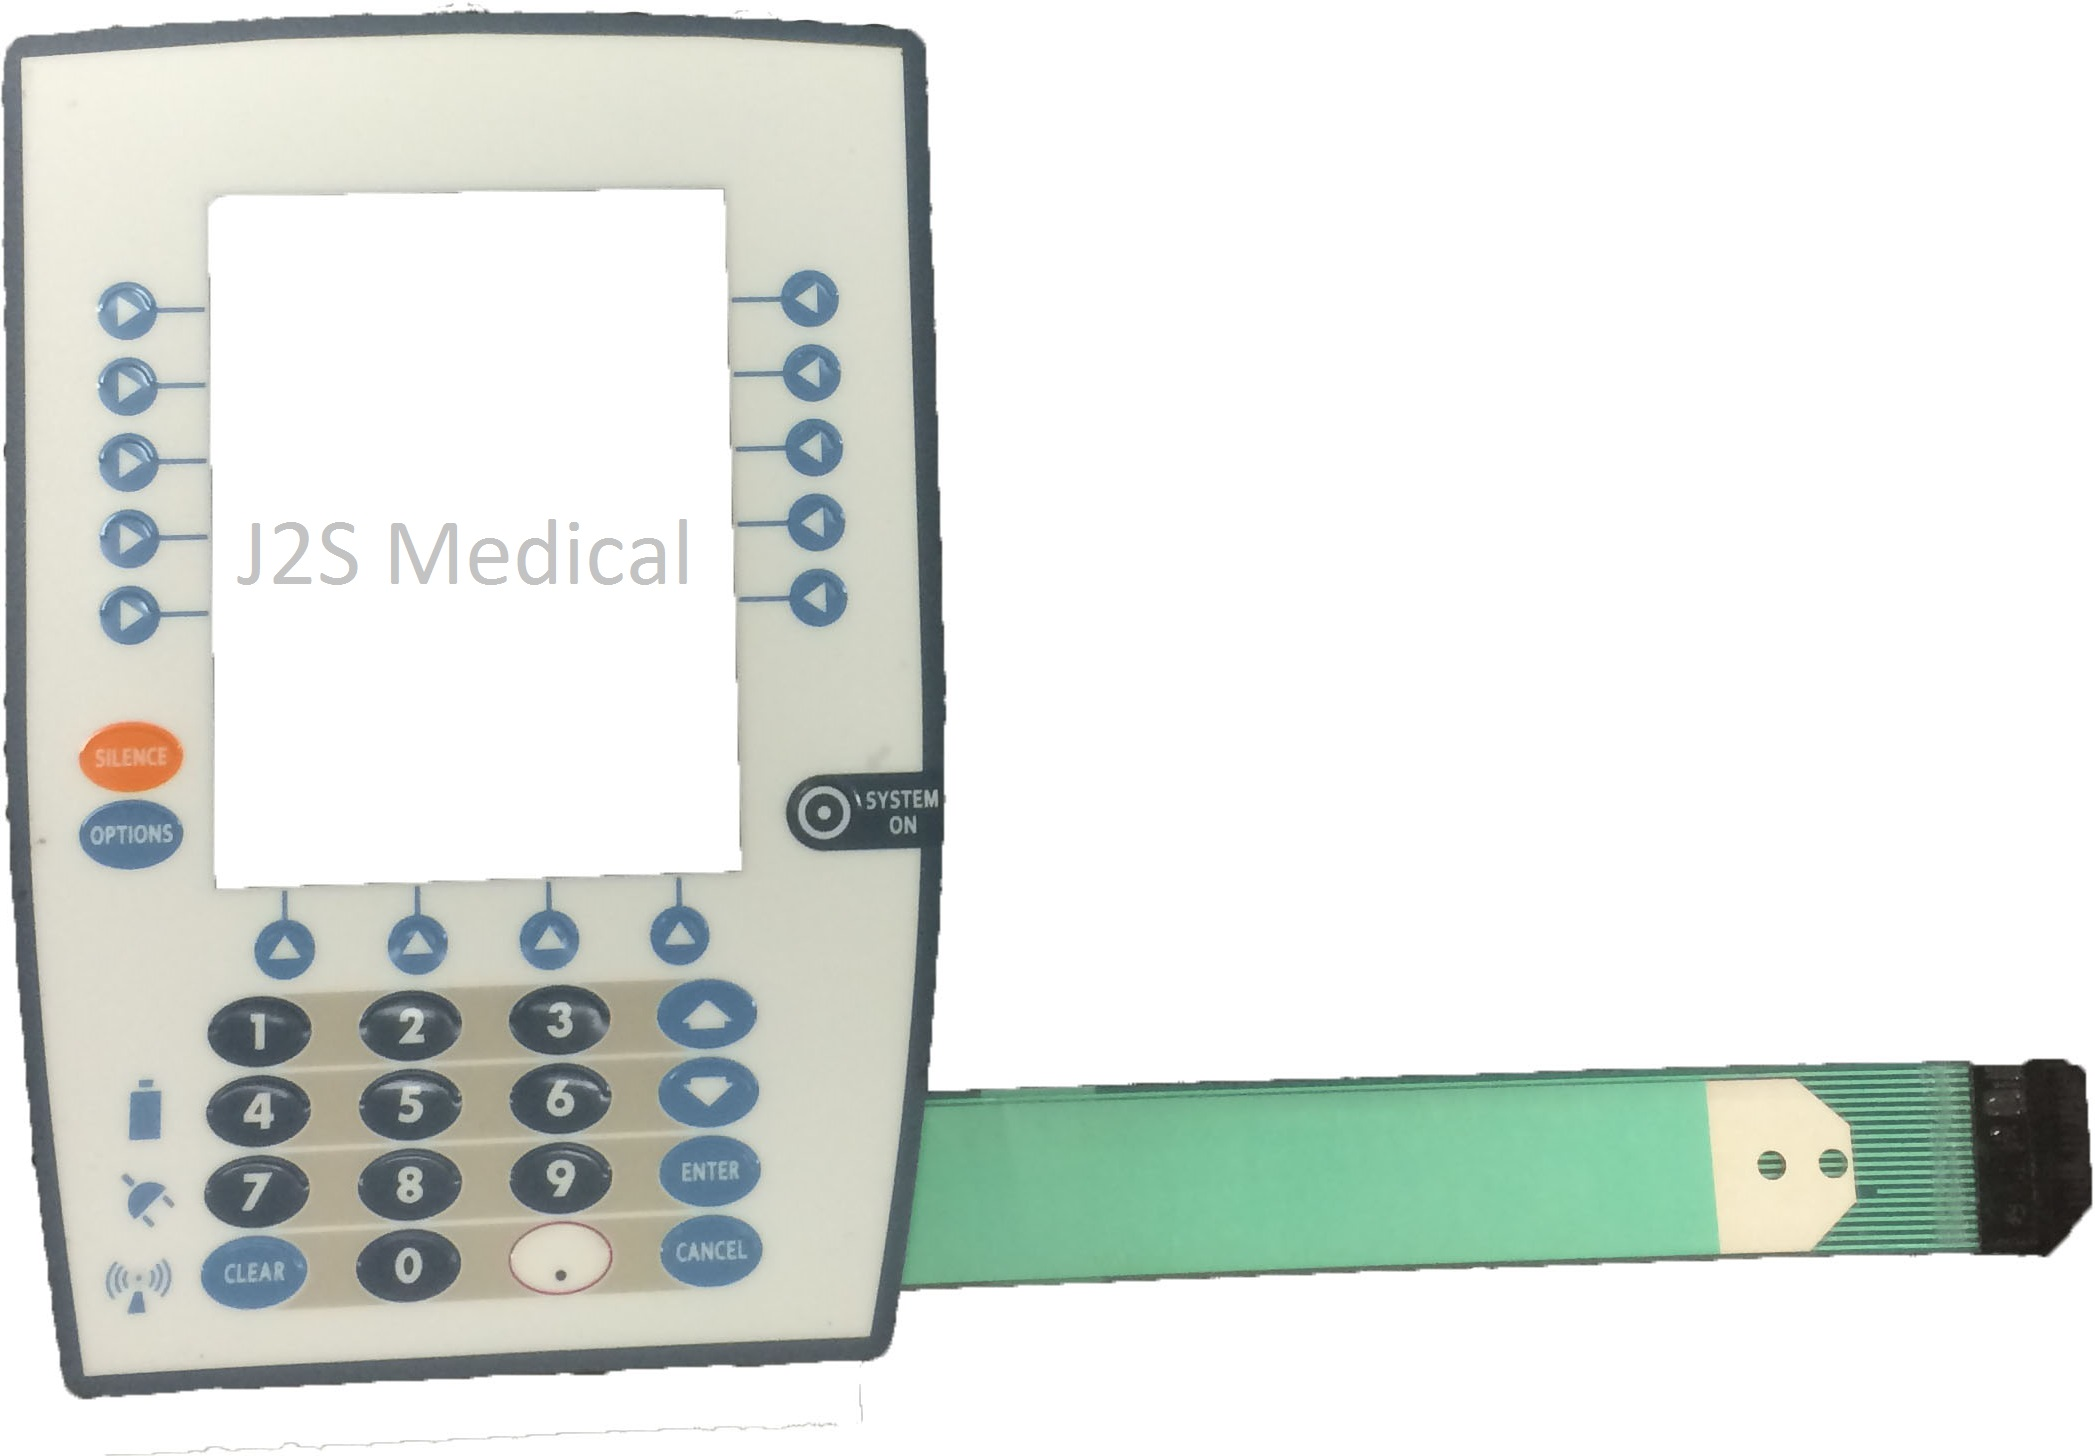 Replacement Keypad For Carefusion Medley 8015 Image